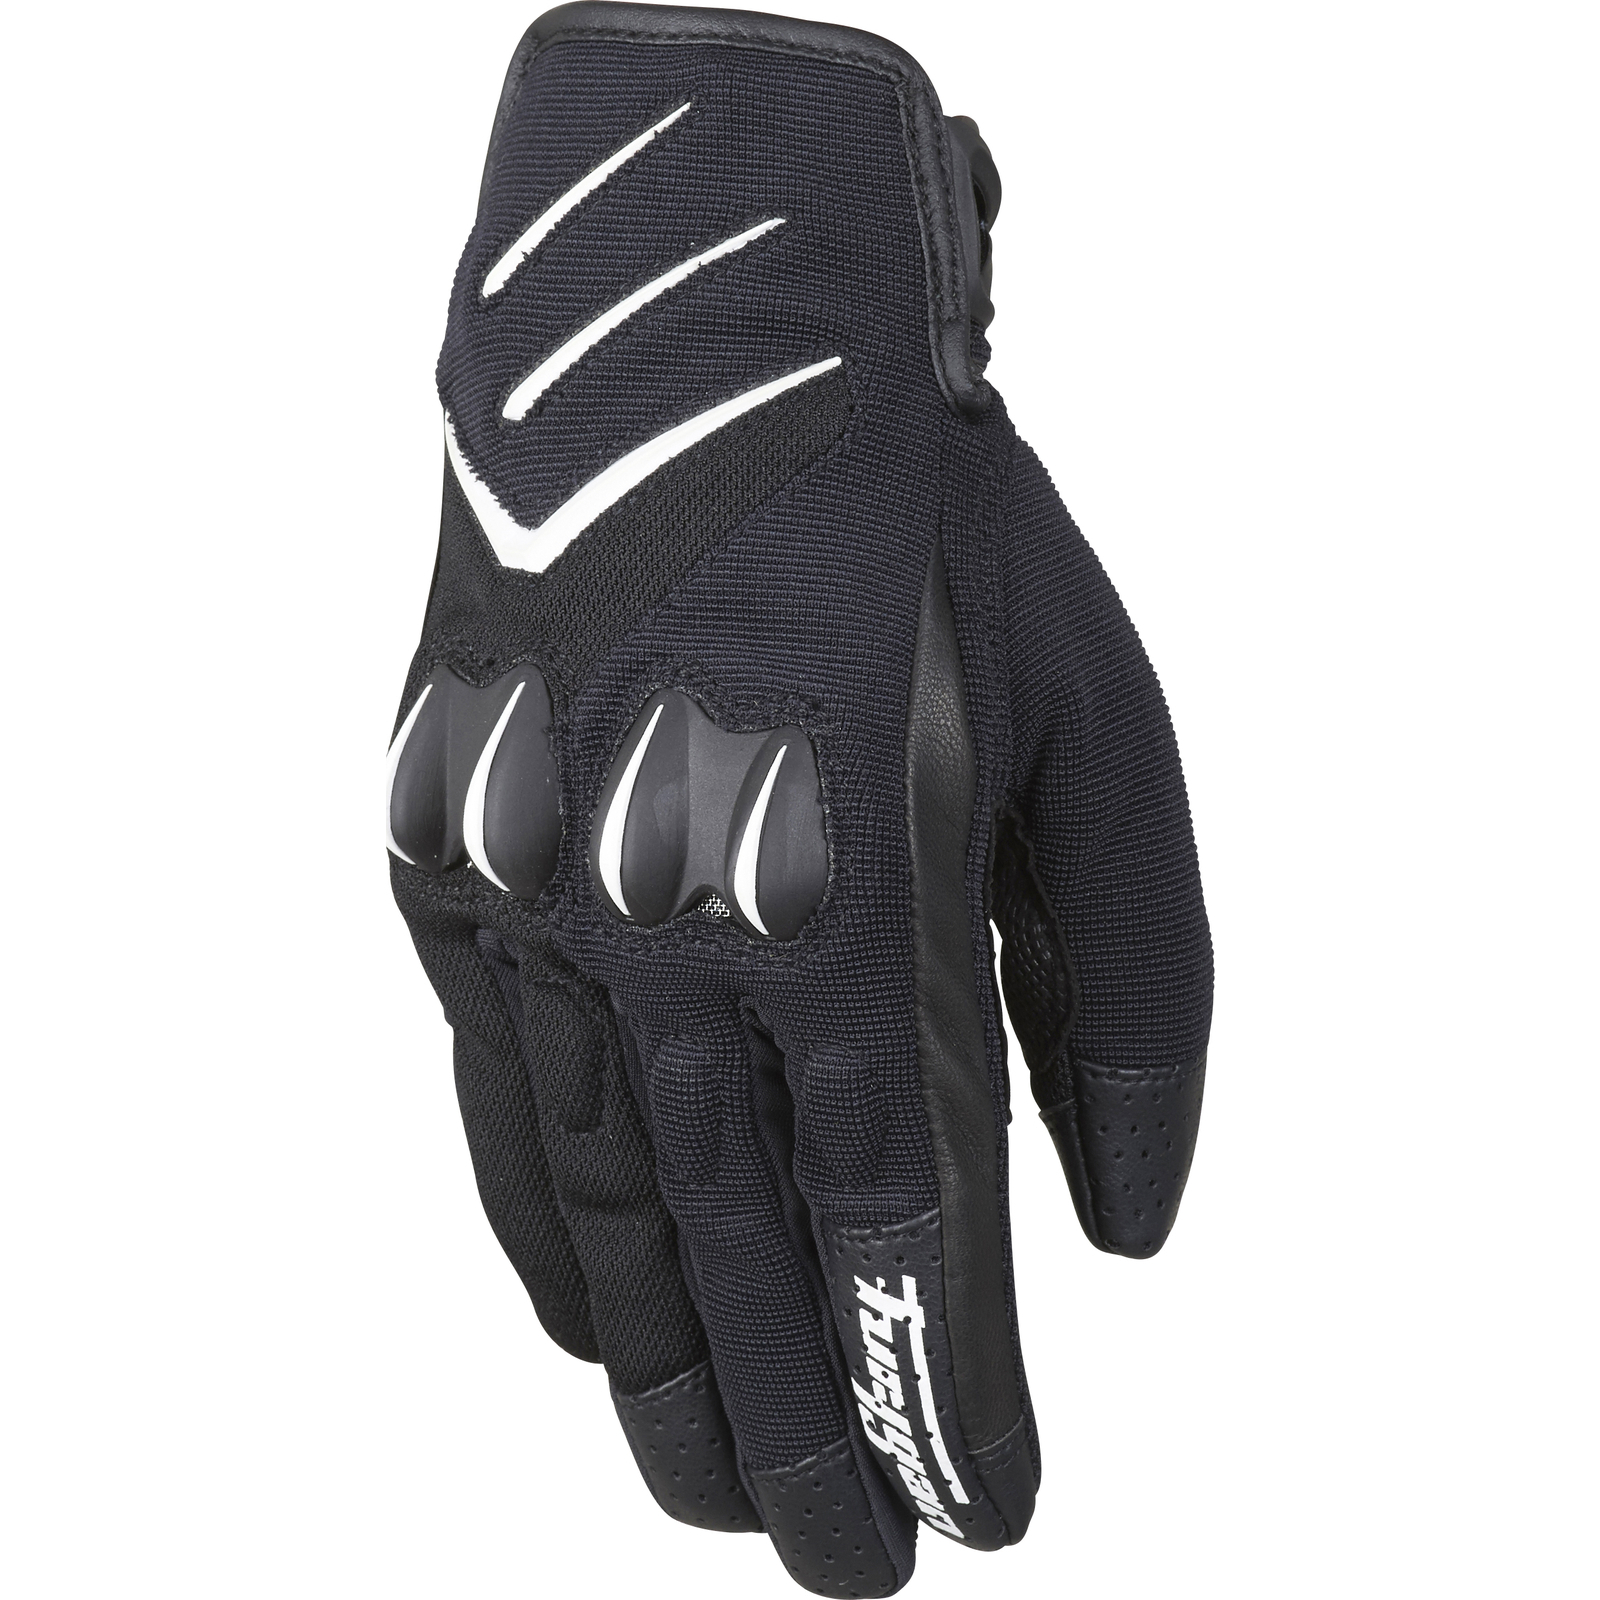 Motorcycle gloves ce approved - Furygan Delta Motorcycle Gloves Textile Mens Summer Vented